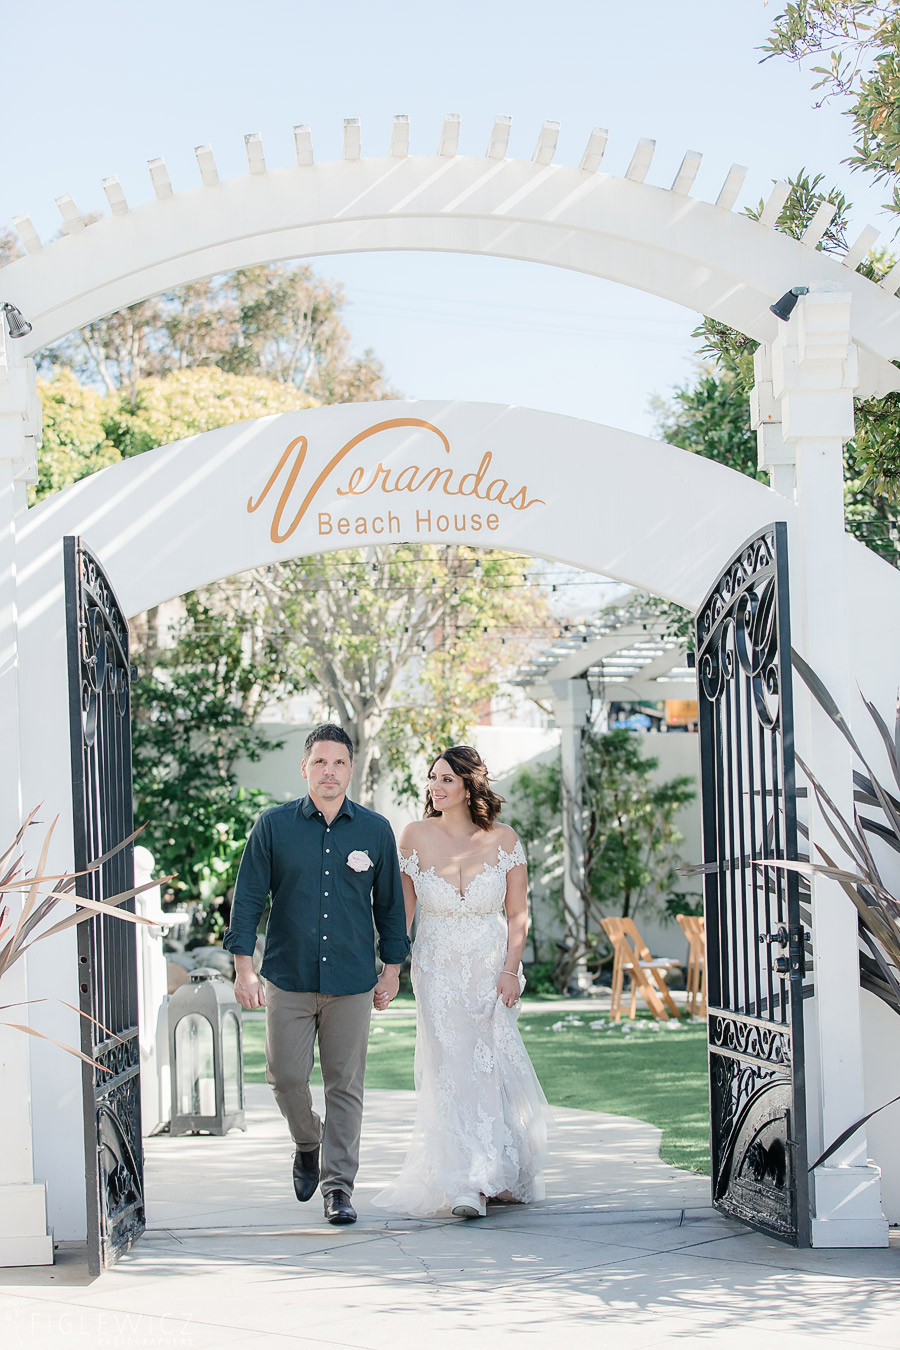 Intimate Verandas Beach House Wedding